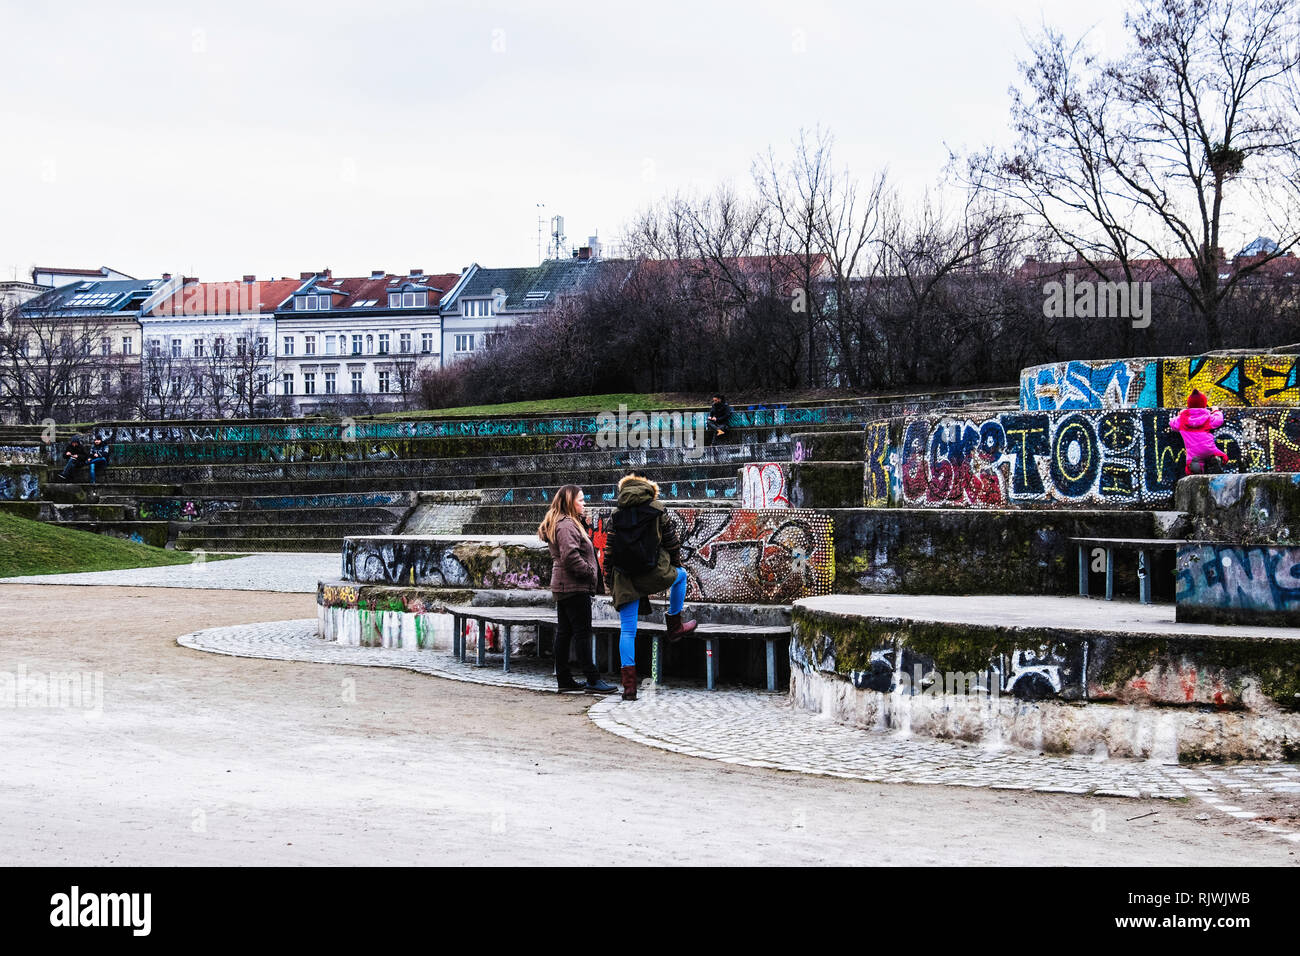 Berlin,Kreuzberg,Gorlitzer Park view with terraced amphithetre-like seating. This was the site of the Pamukkale fountain created by Wigan Witting - Stock Image